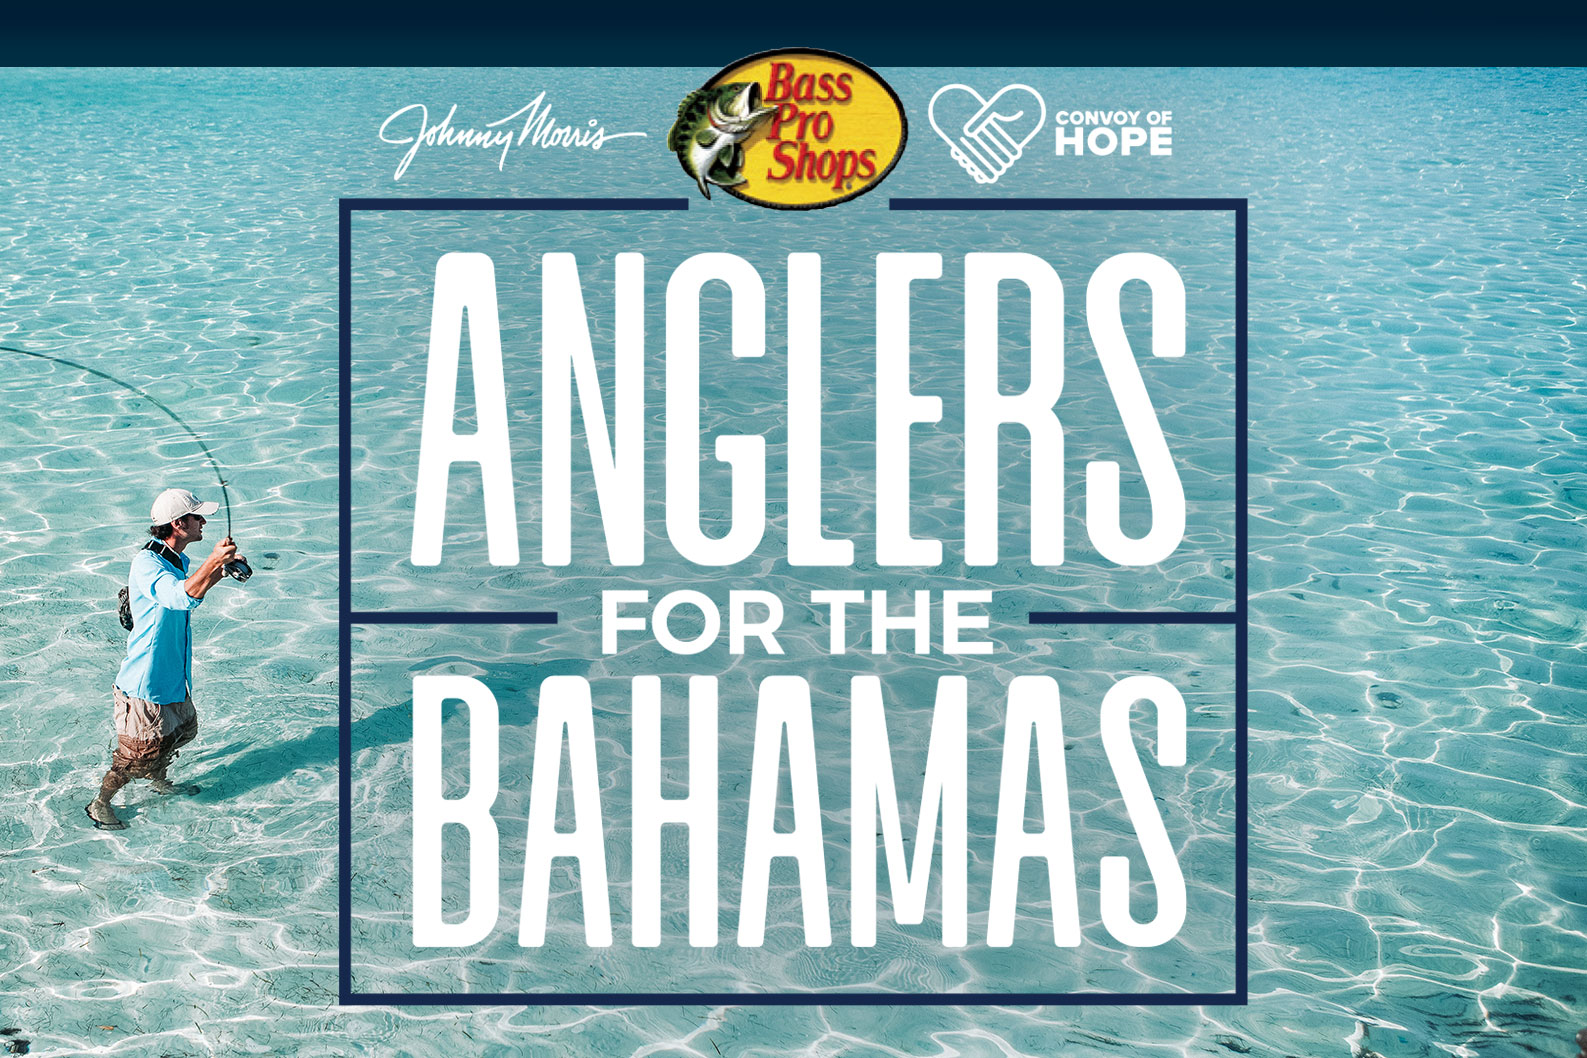 Johnny Morris, Bass Pro Shops and Convoy of Hope Partner to provide relief through Anglers for the Bahamas - United for Relief